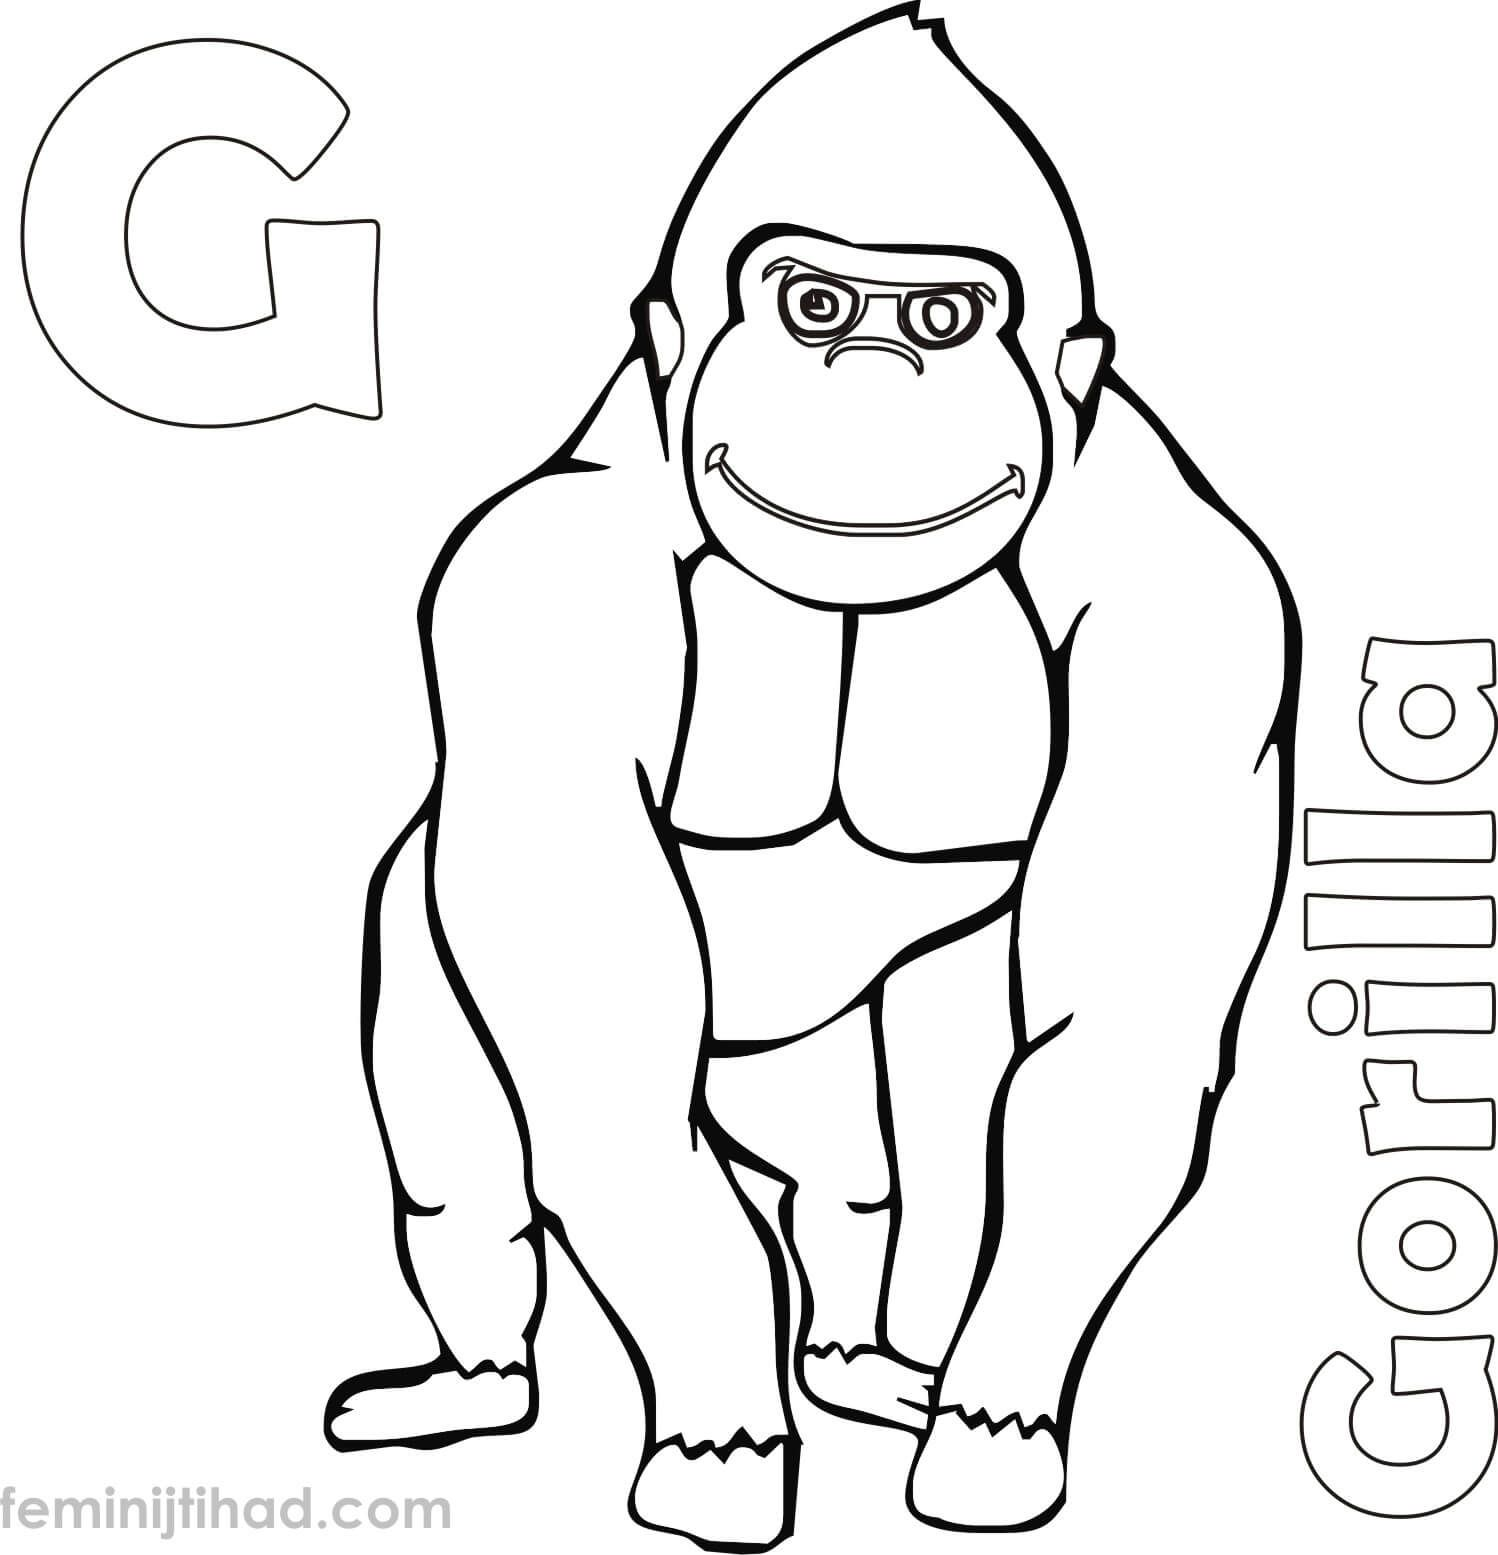 Gorilla Coloring Pages Printable In 2020 Baby Coloring Pages Family Coloring Pages Coloring Pages